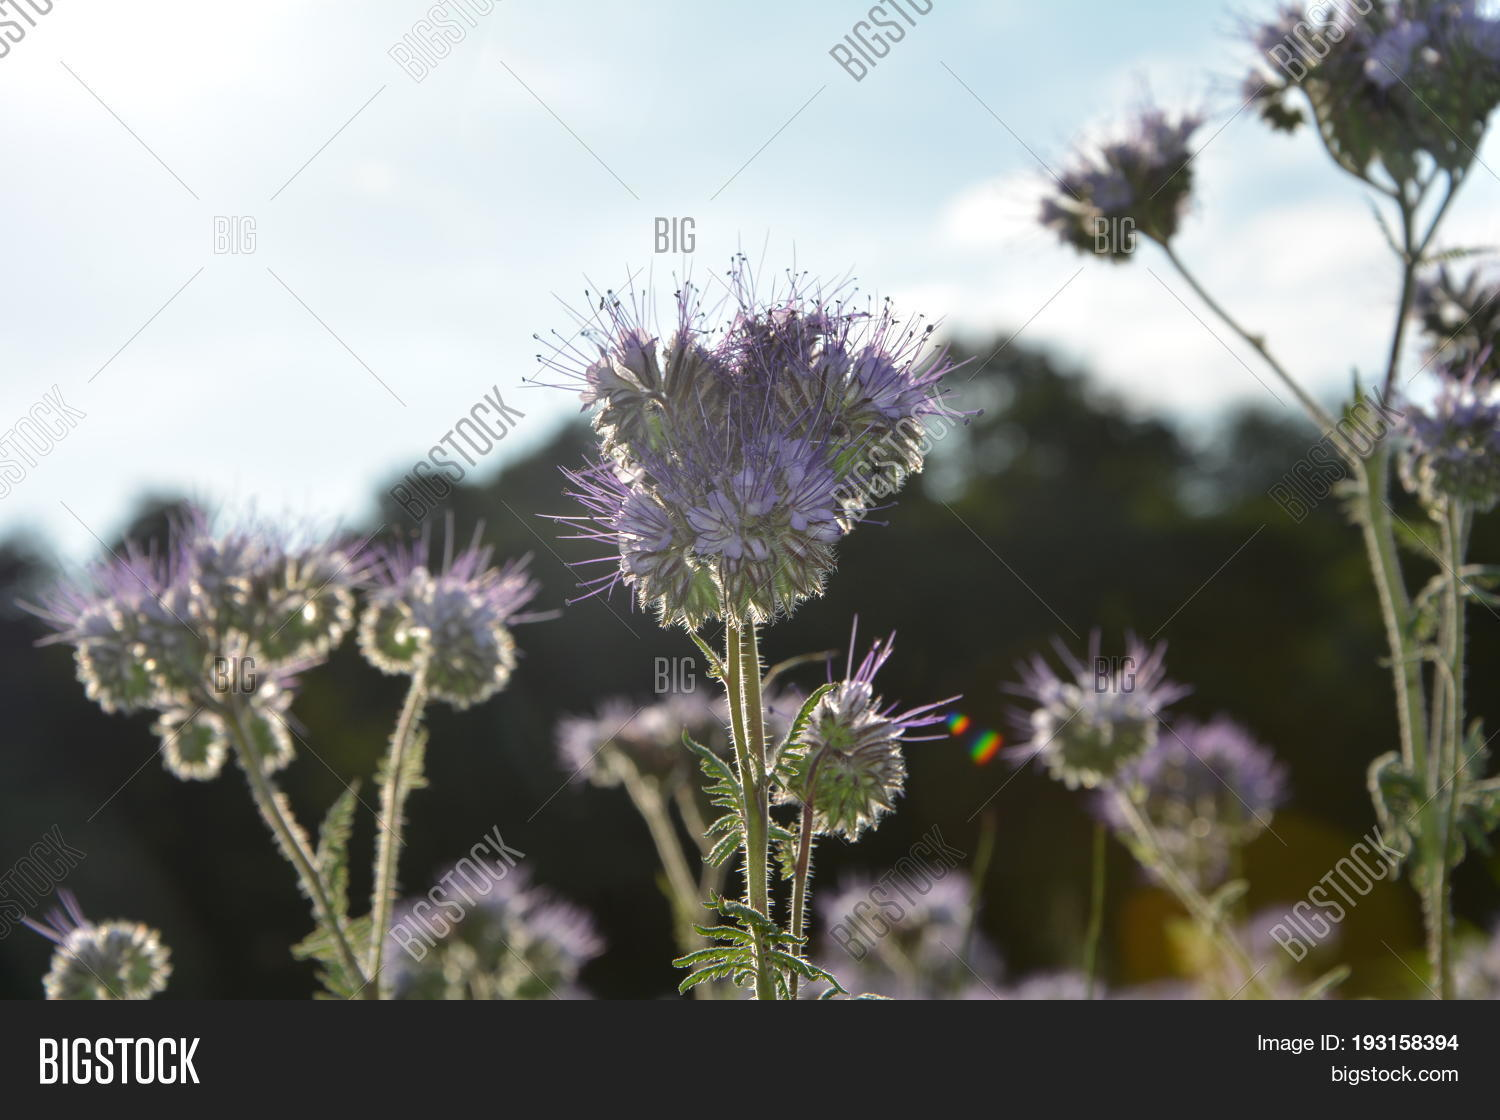 Asteriden,Back,Boraginaceae,Hydrophylloideae,Kerneudikotyledonen,Phacelia,Rau's,agrarian,agriculture,bee's,beekeeper's,bees,blossom,blue,bumblebee,close-up,country,detail,farming,fern-Phazelie,field,flower,food,friend,green,grow,honey,insect,lavender,light,lilac,margin,meadow,nectar,pastures,plant,pollen,scorpionweed,sheet,sky,tanacetifolia,violet,water